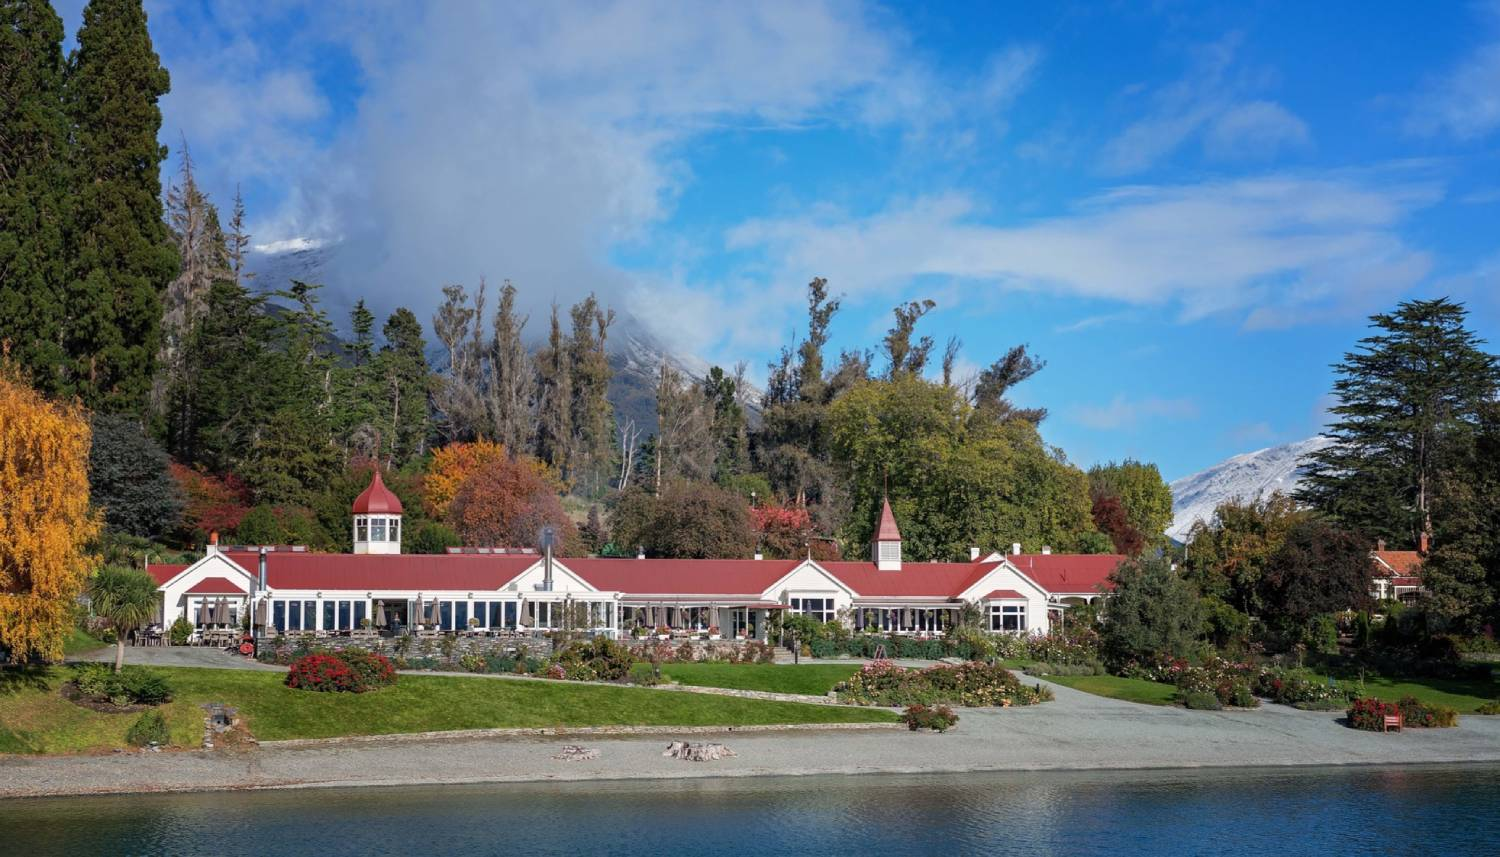 Walter Peak High Country Farm - Things To Do In Queenstown